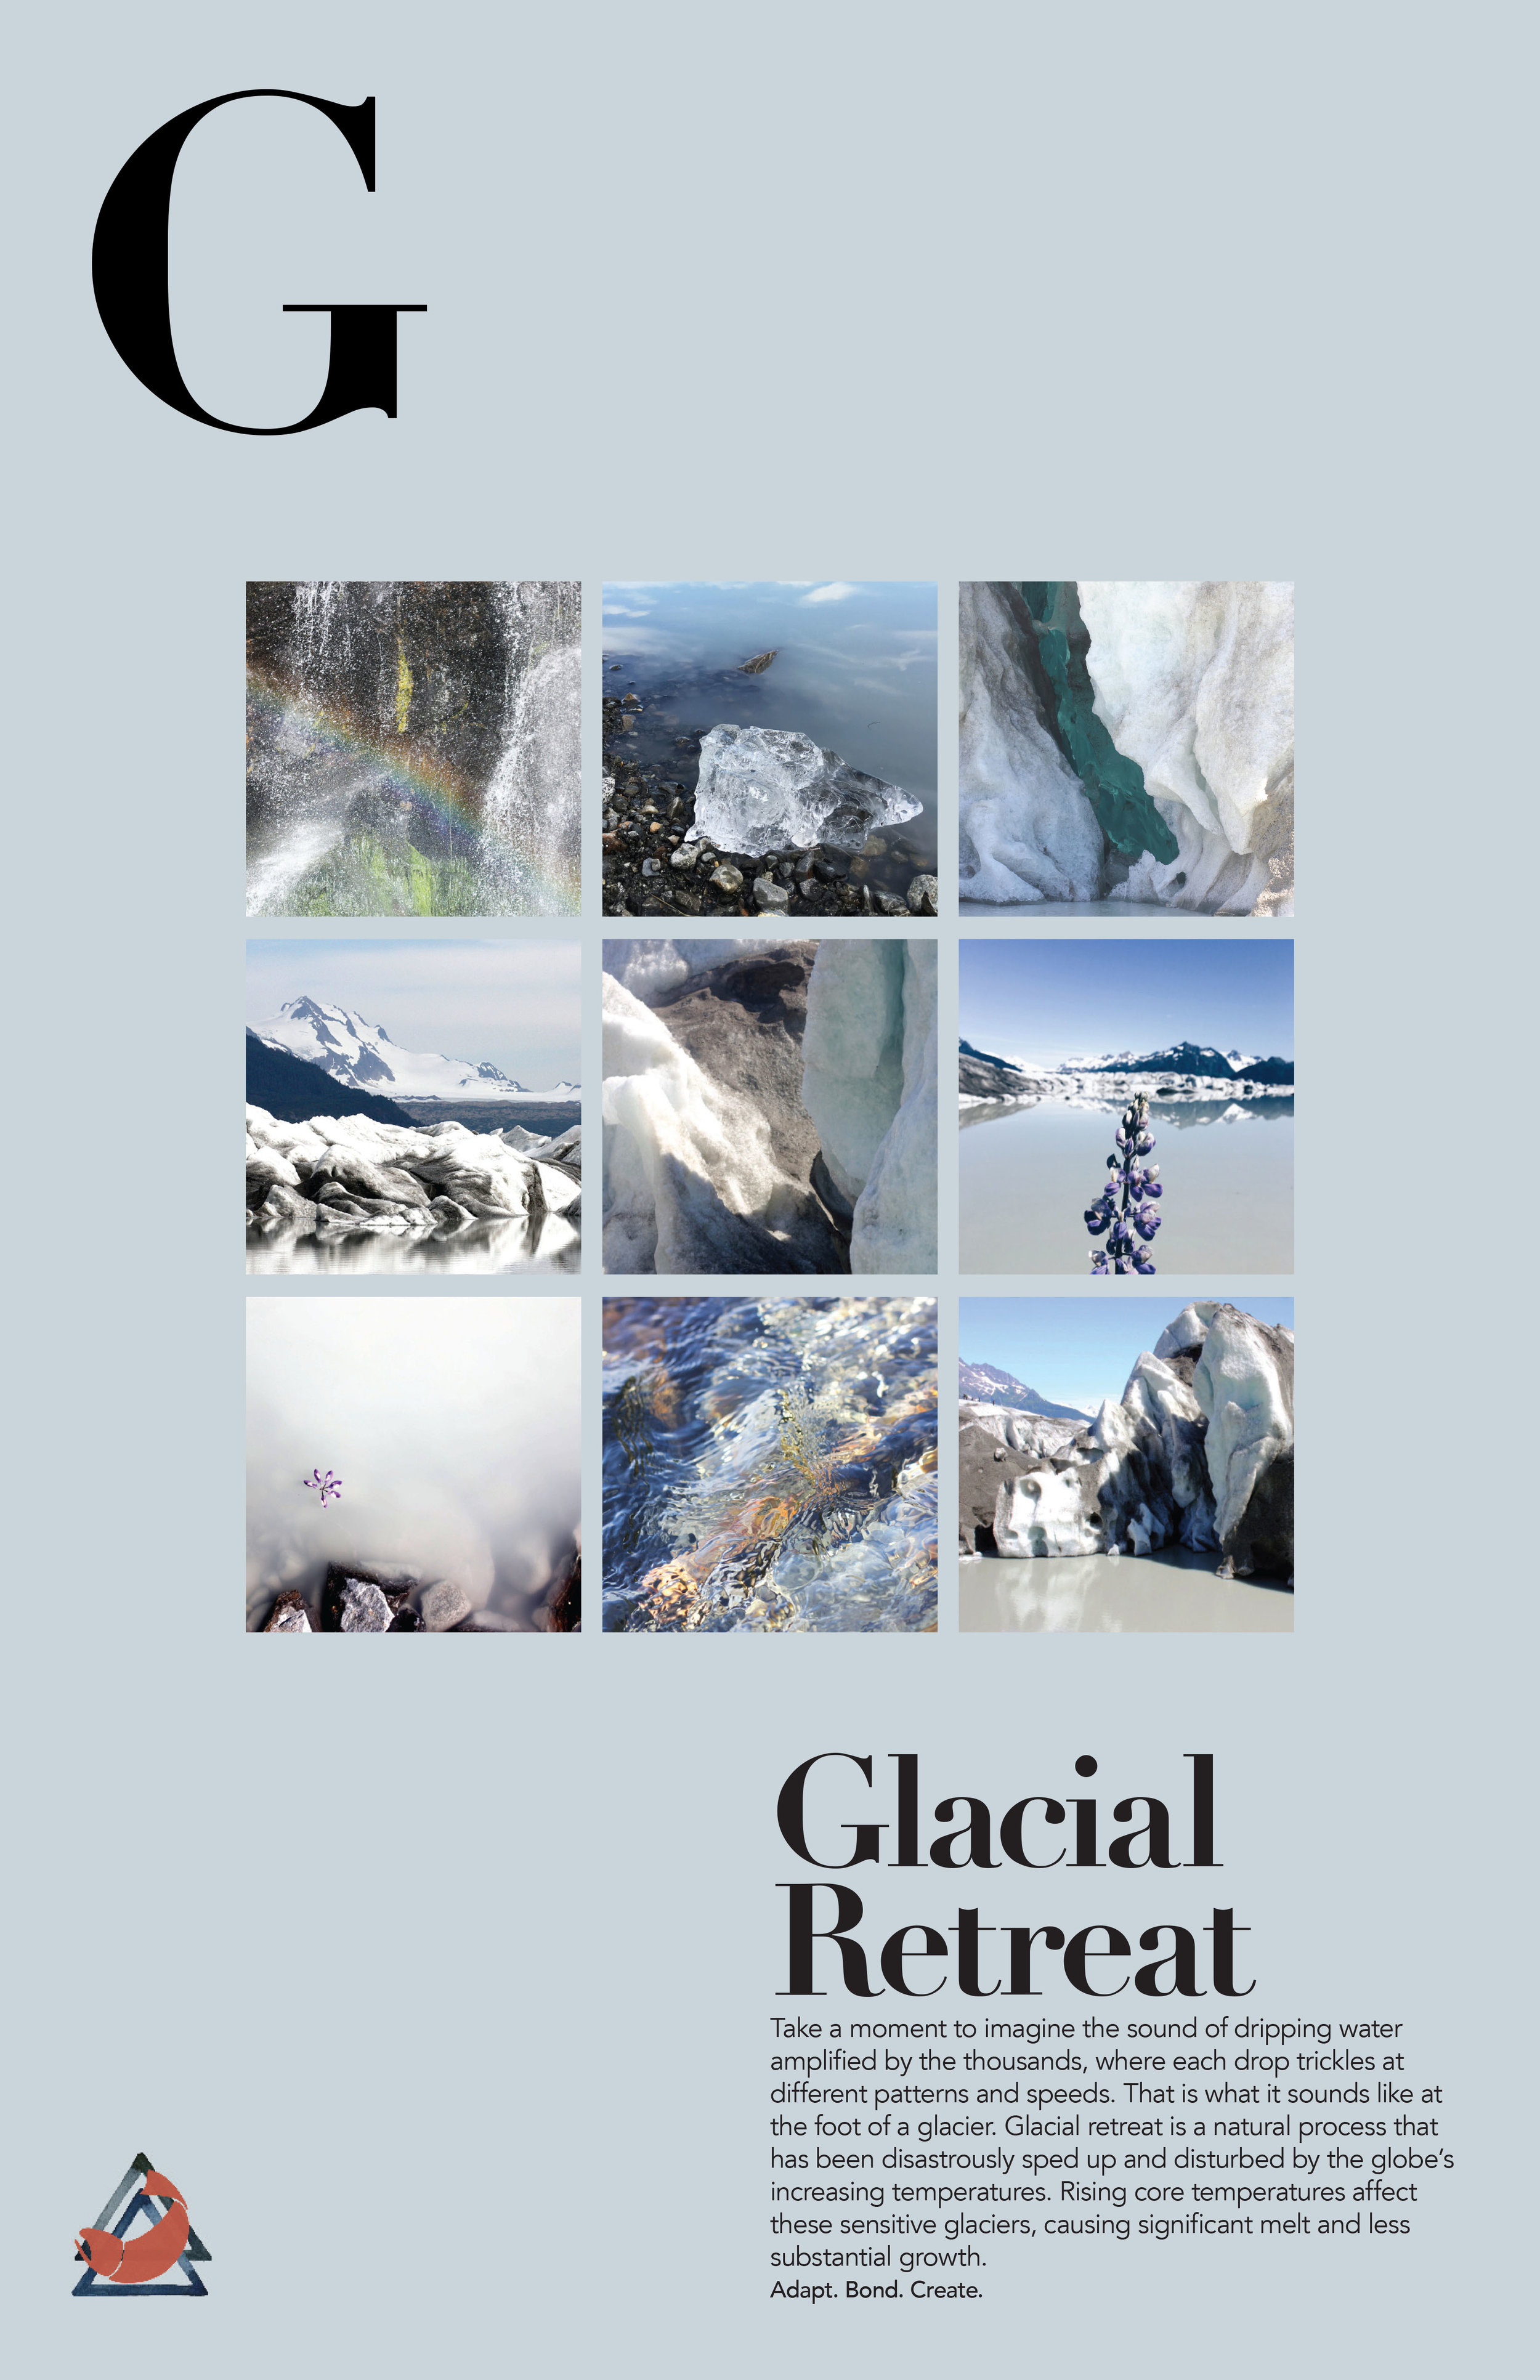 glacialretreat_final copy.jpg